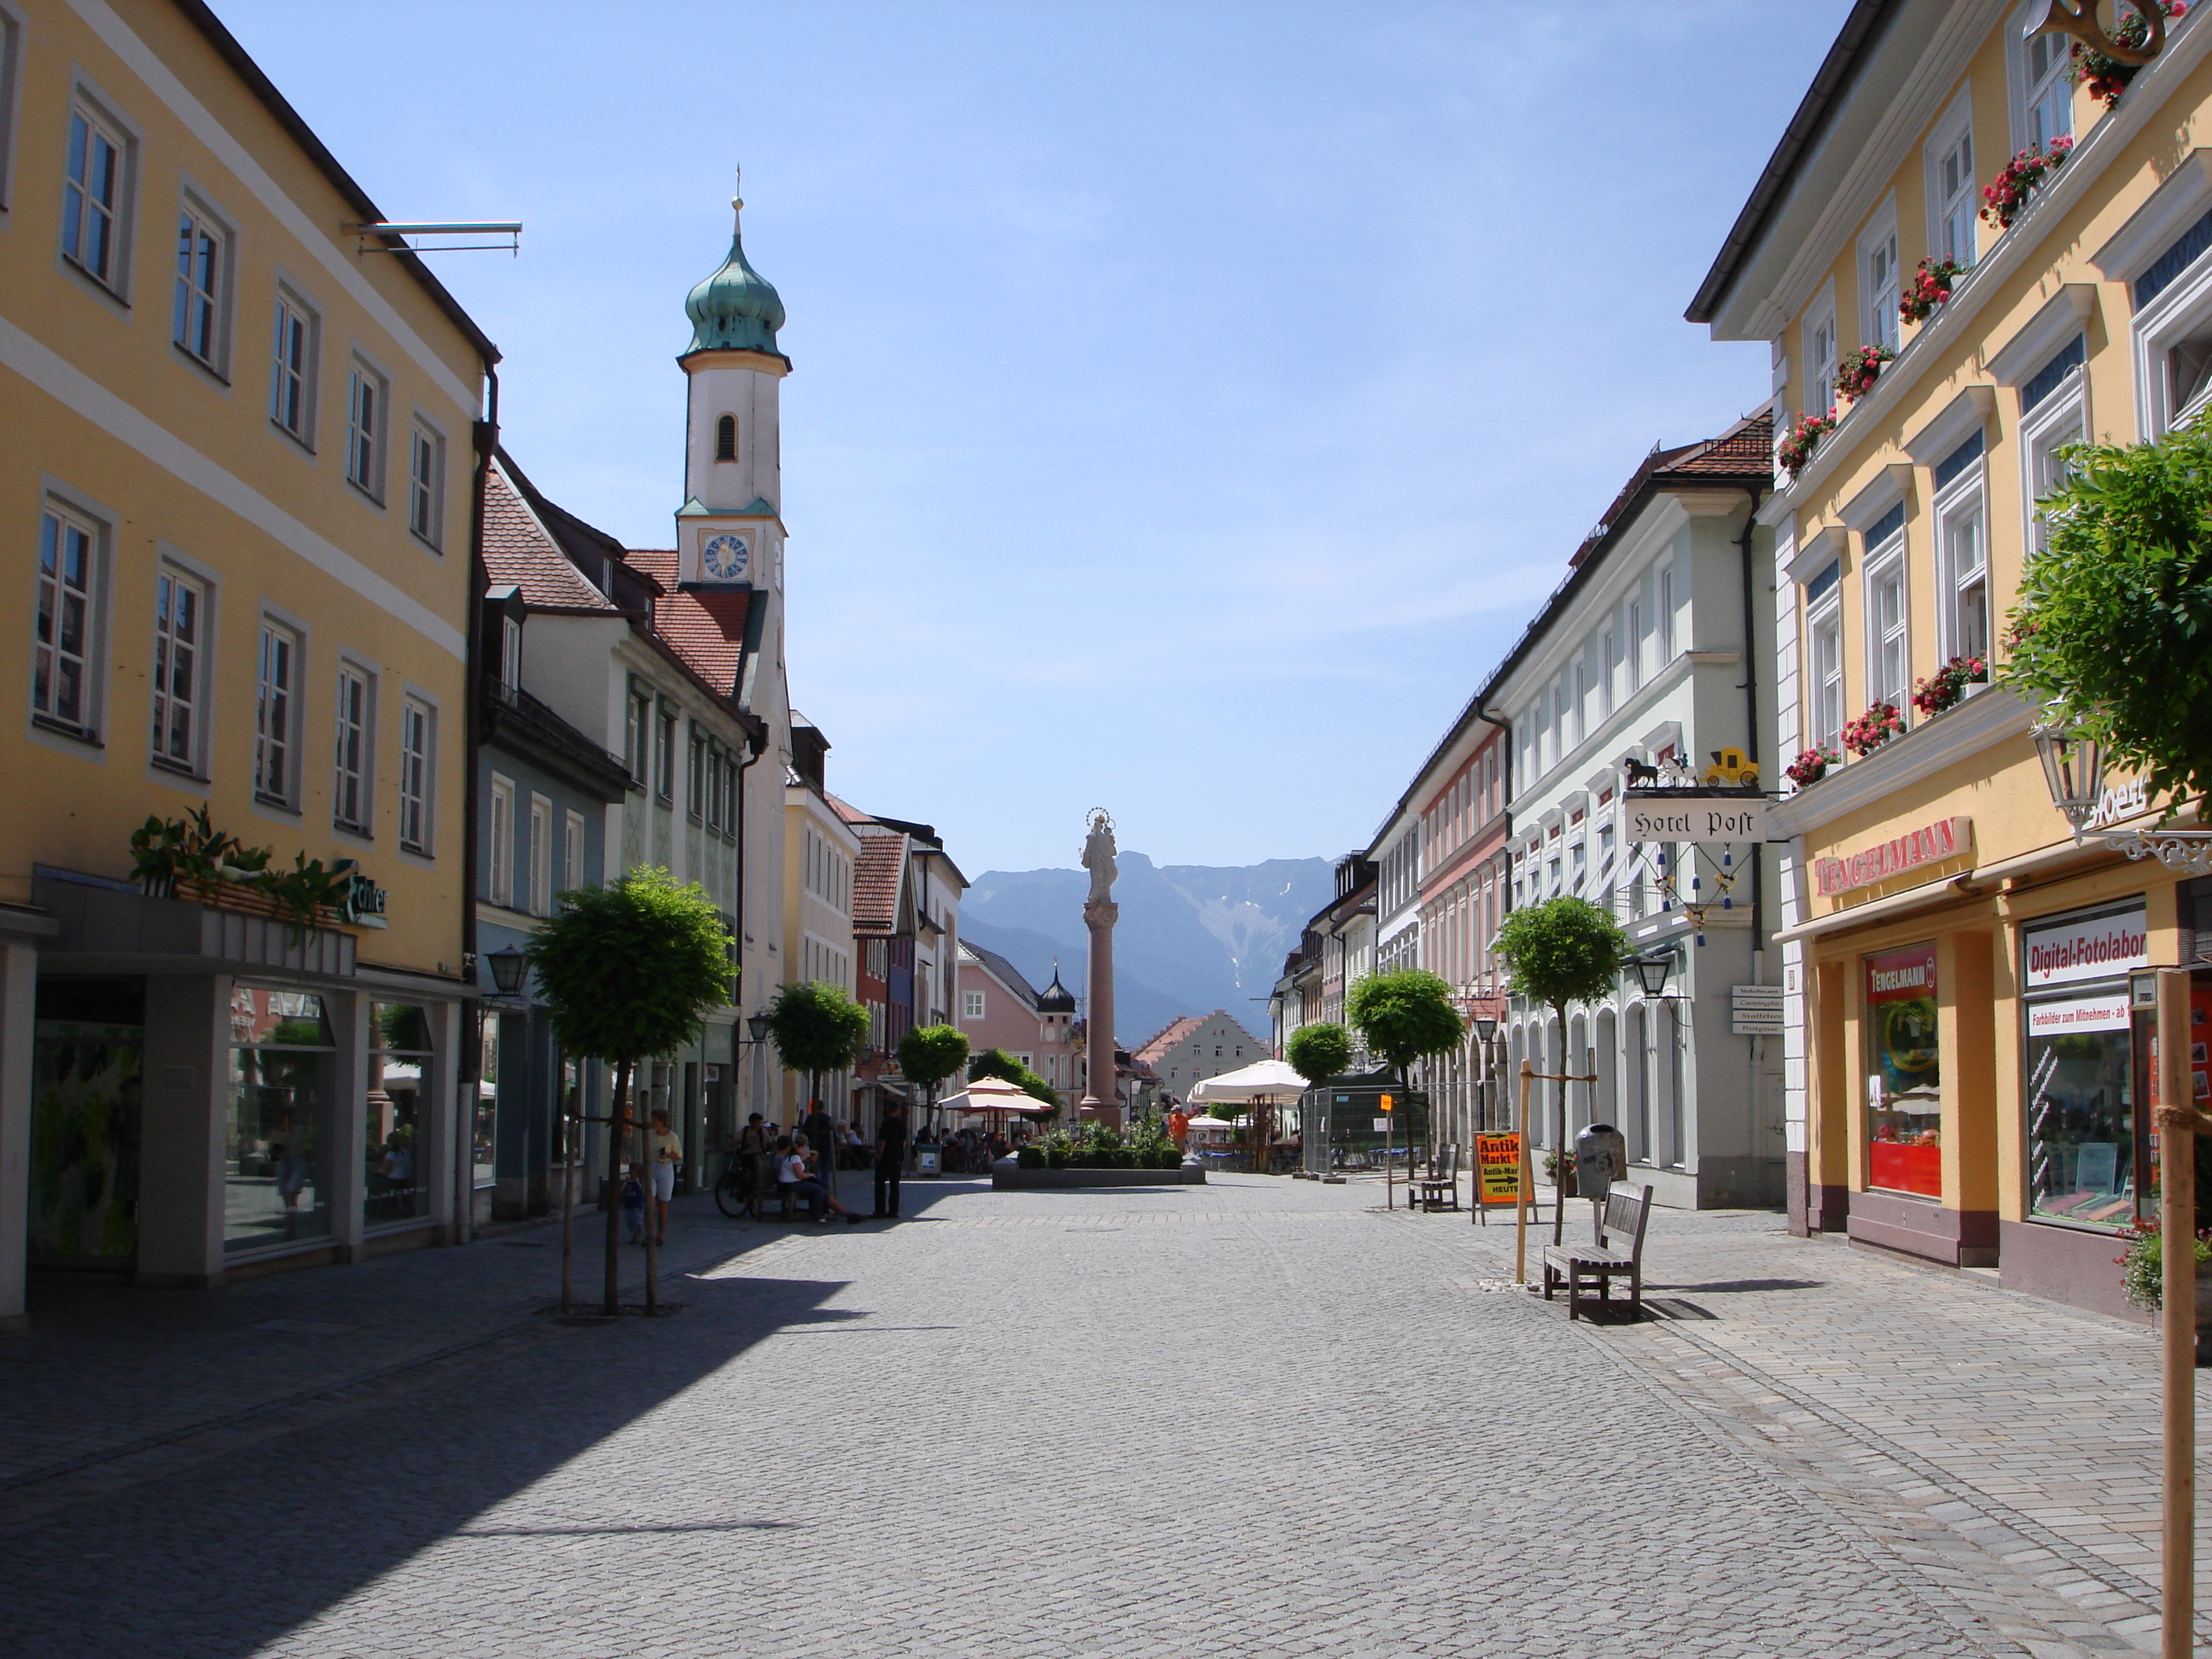 Murnau am Staffelsee Germany  City pictures : Original file  2,592 × 1,944 pixels, file size: 2.25 MB, MIME ...